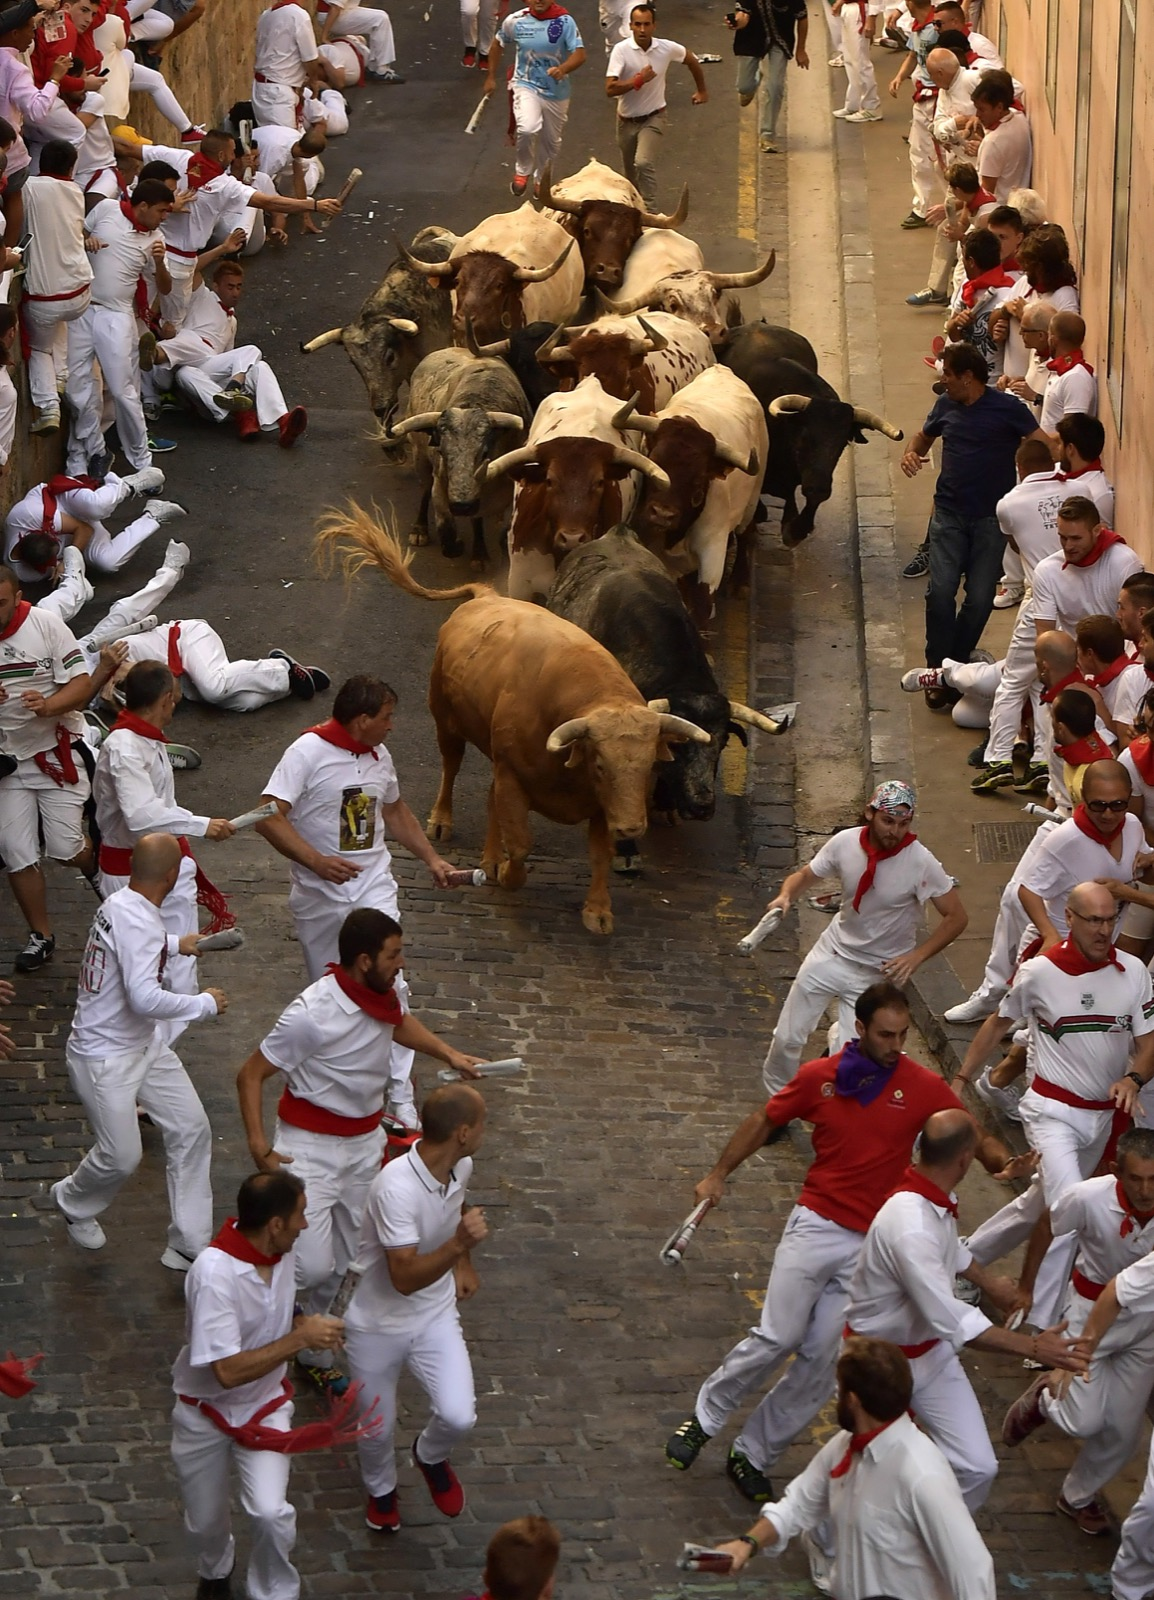 The runnings of the bulls Pamplona